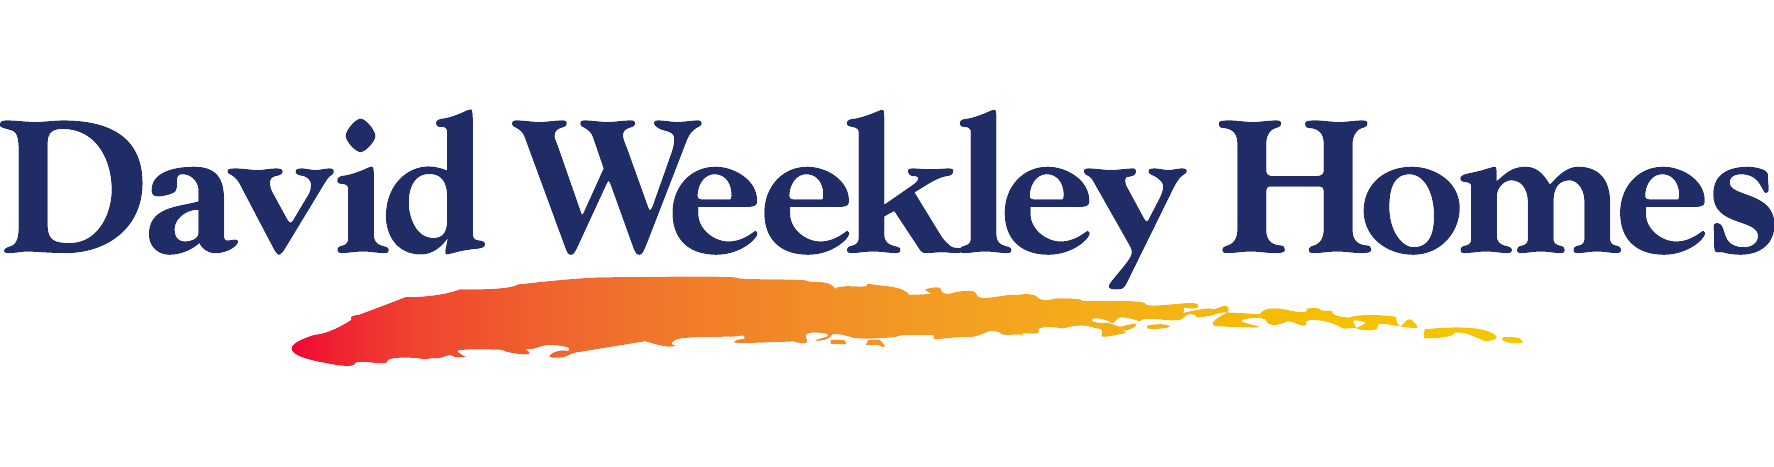 david-weekley-homes.png